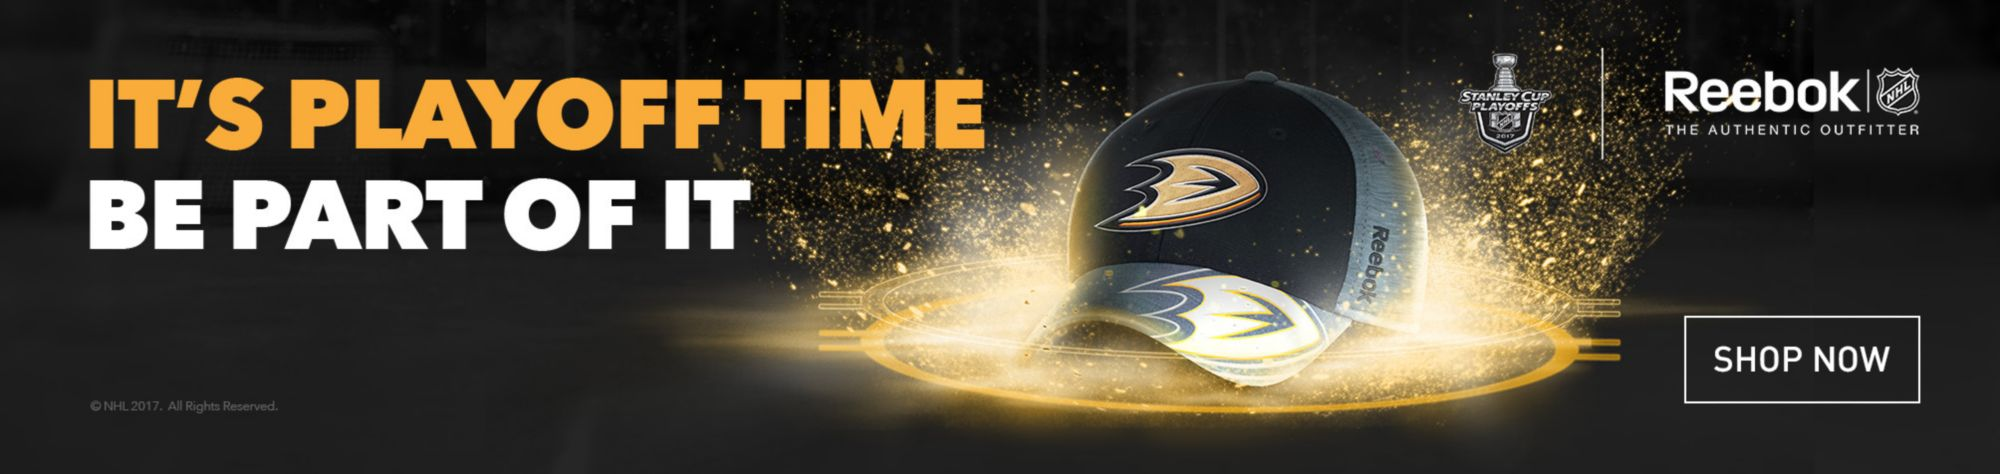 NHL Reebok Playoffs - Anaheim Ducks